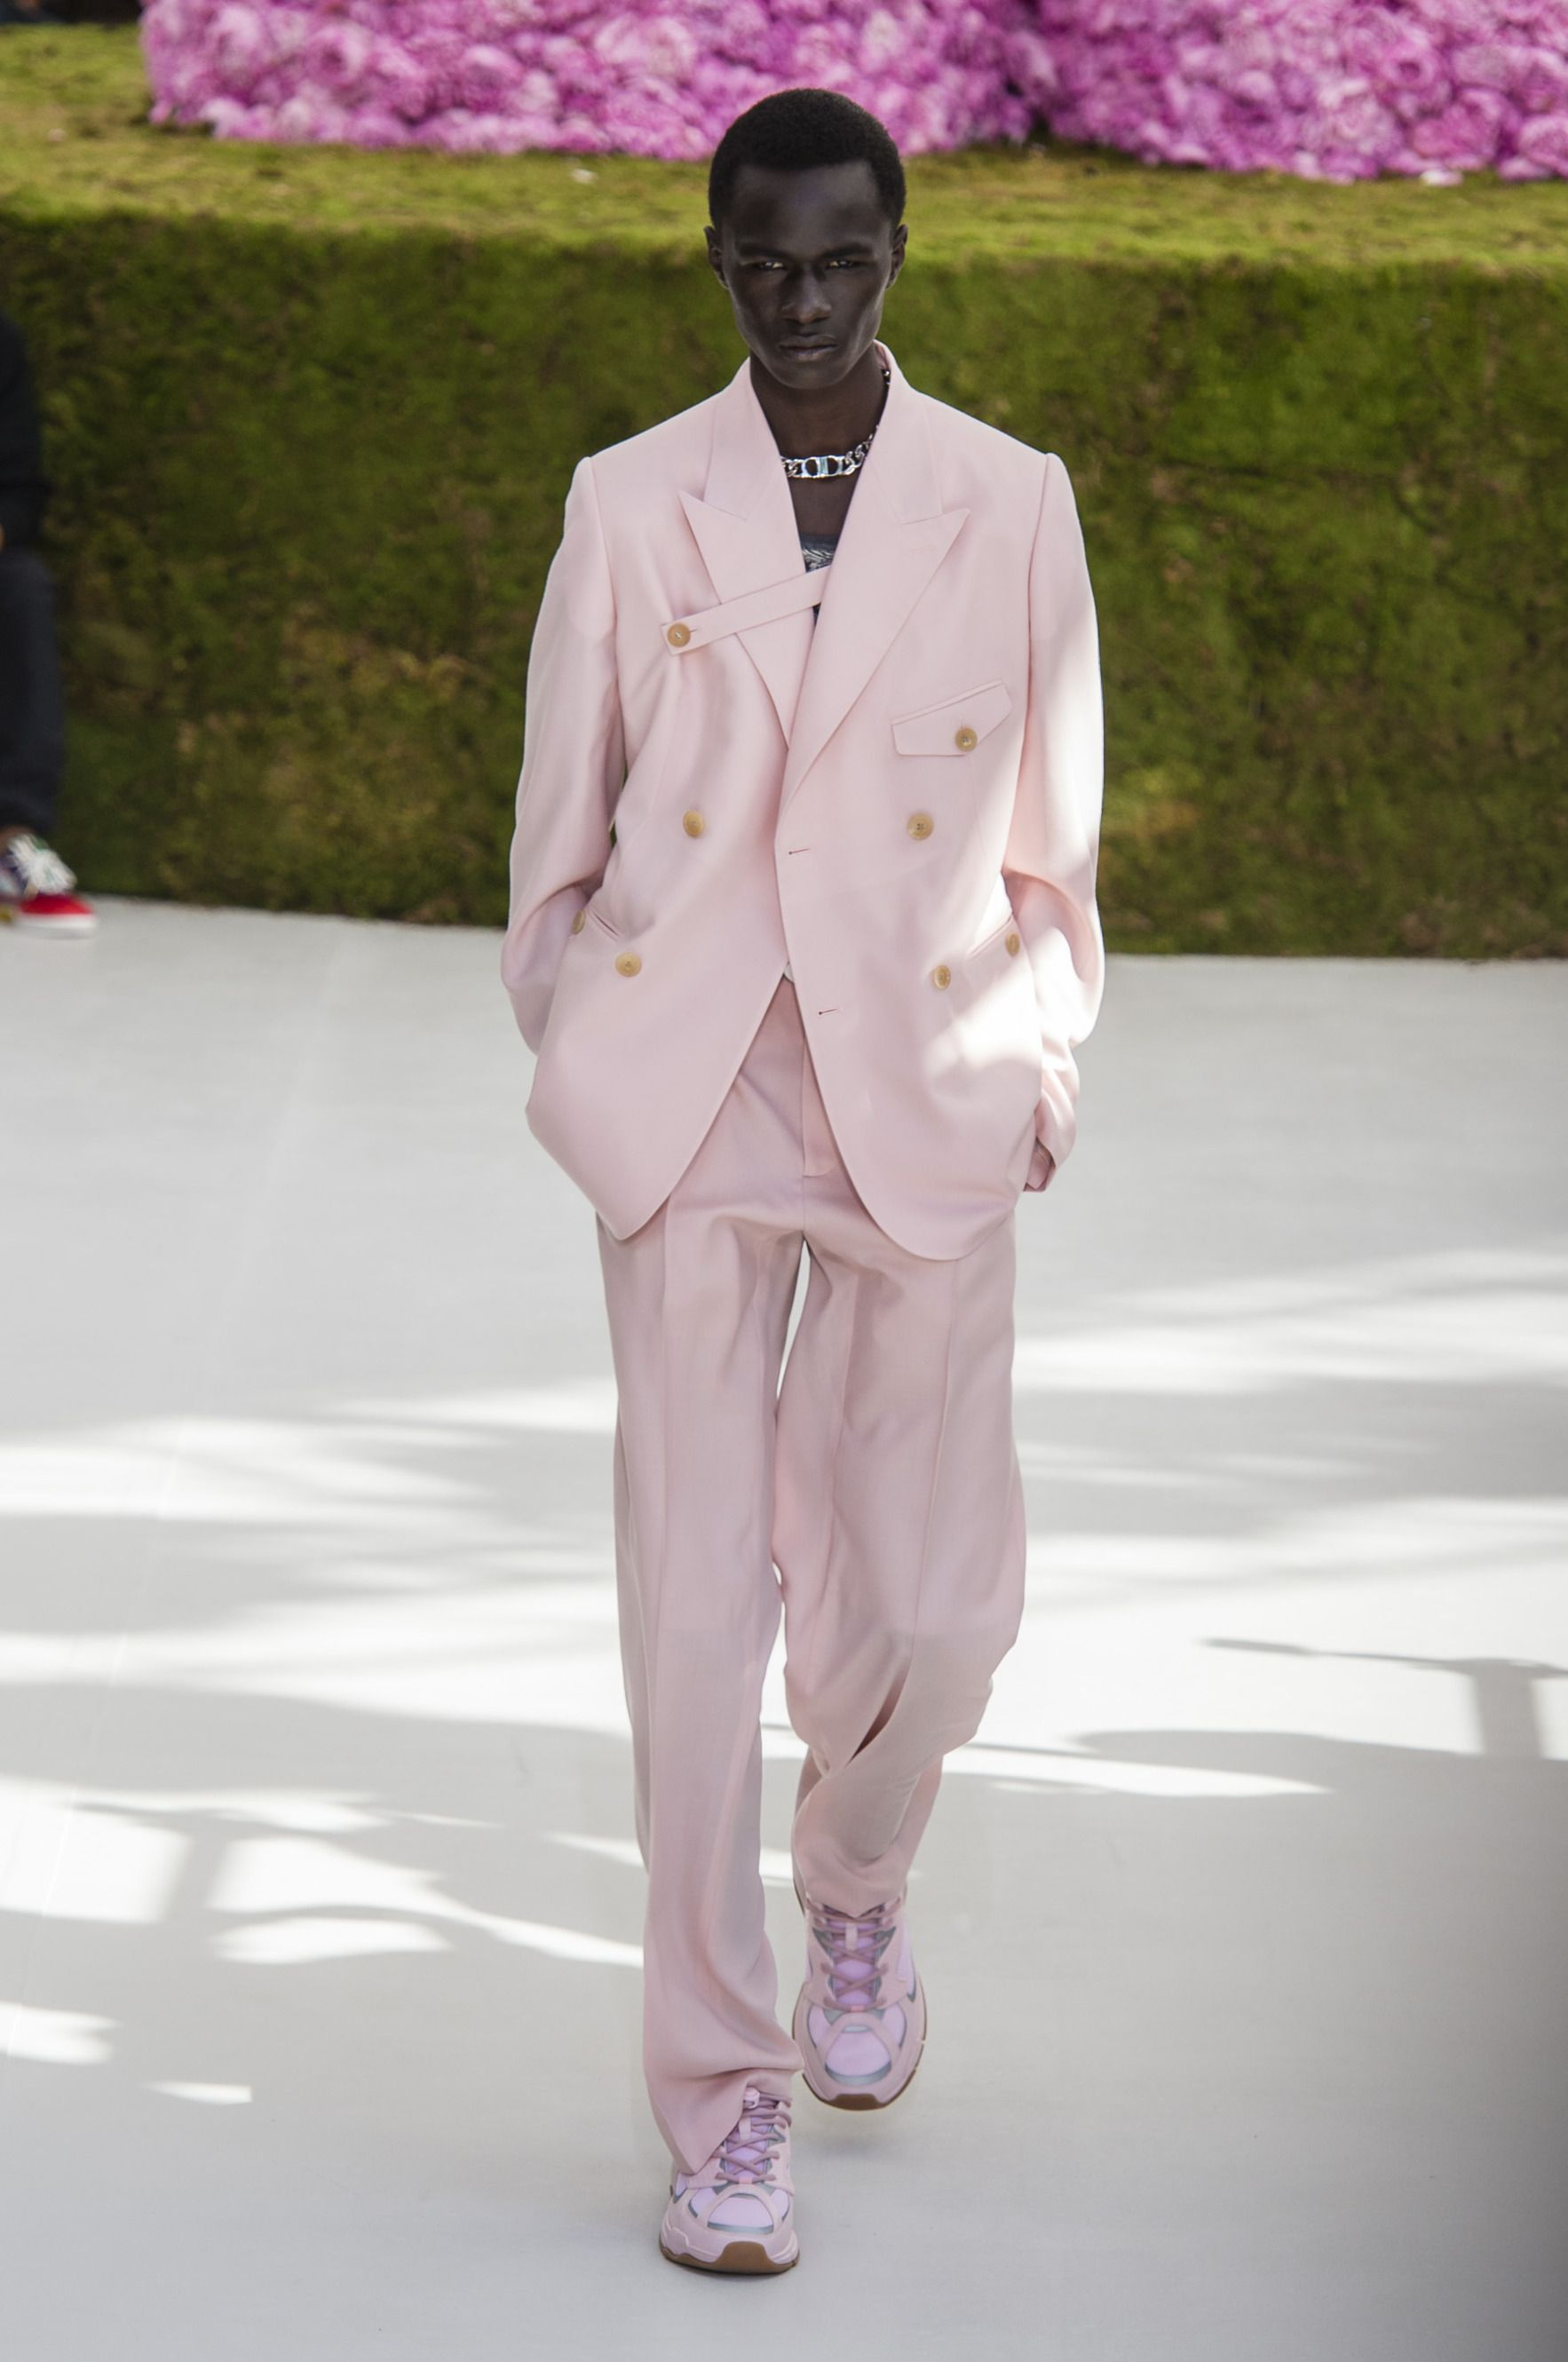 Pin on Fashion Menswear & Inspired by